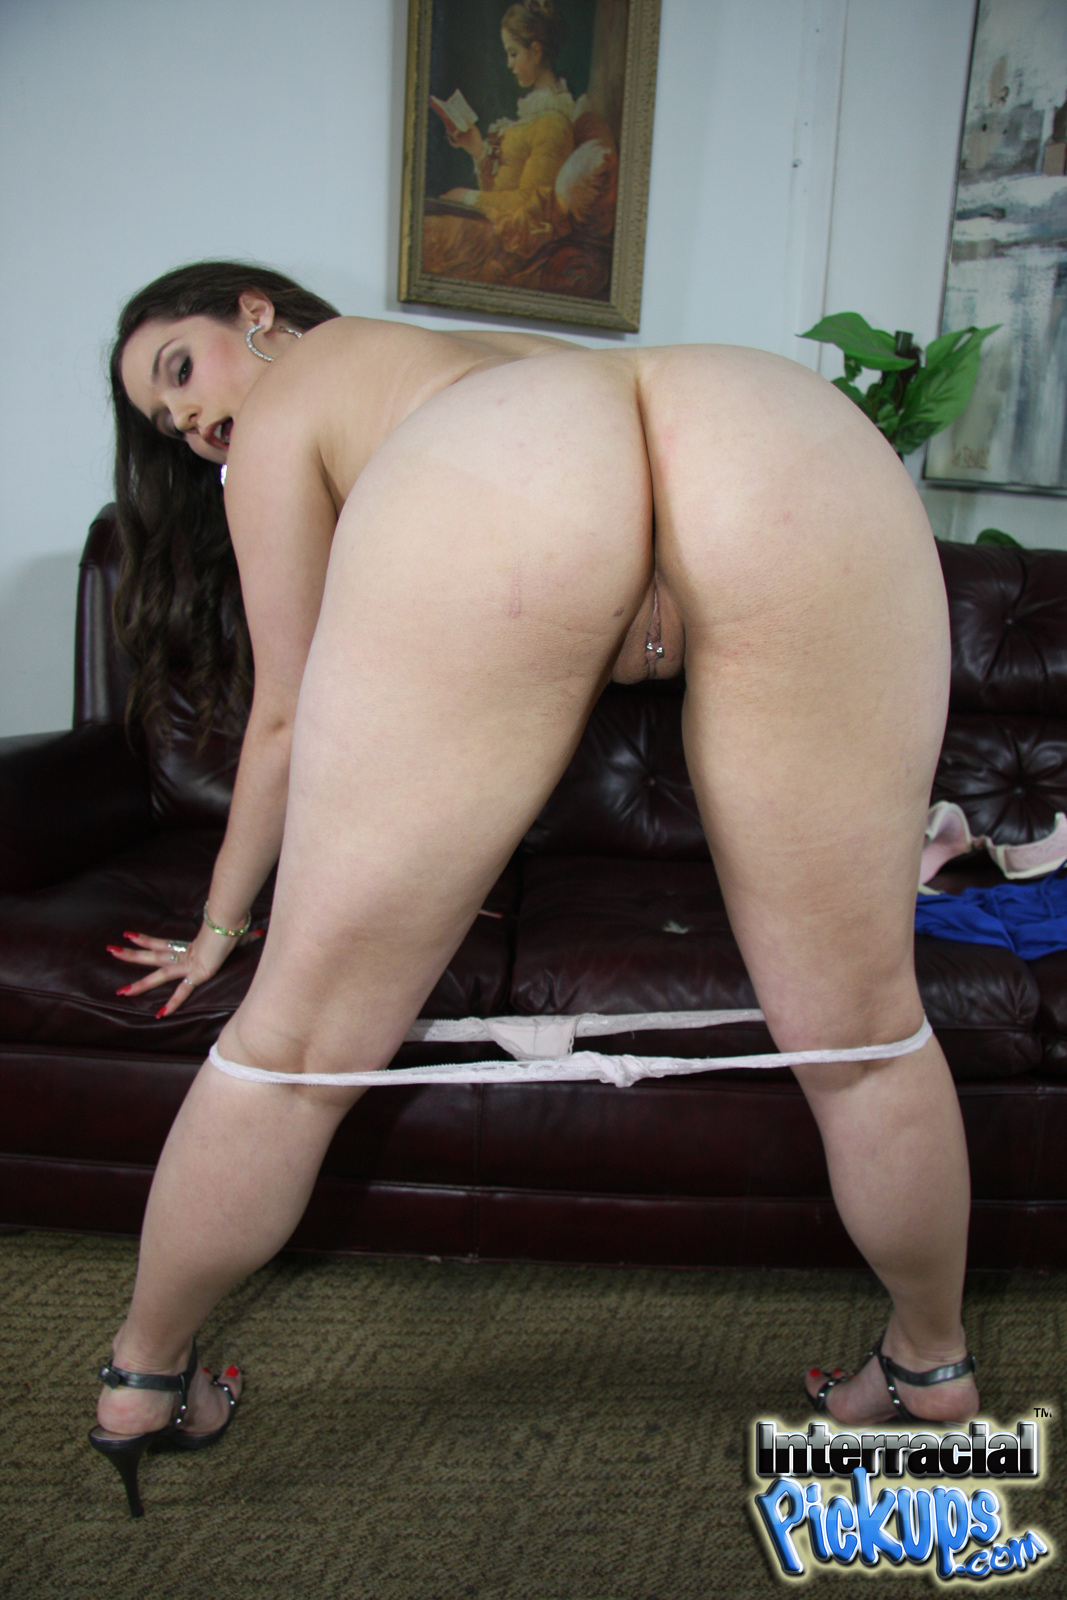 bbw interracial pickups